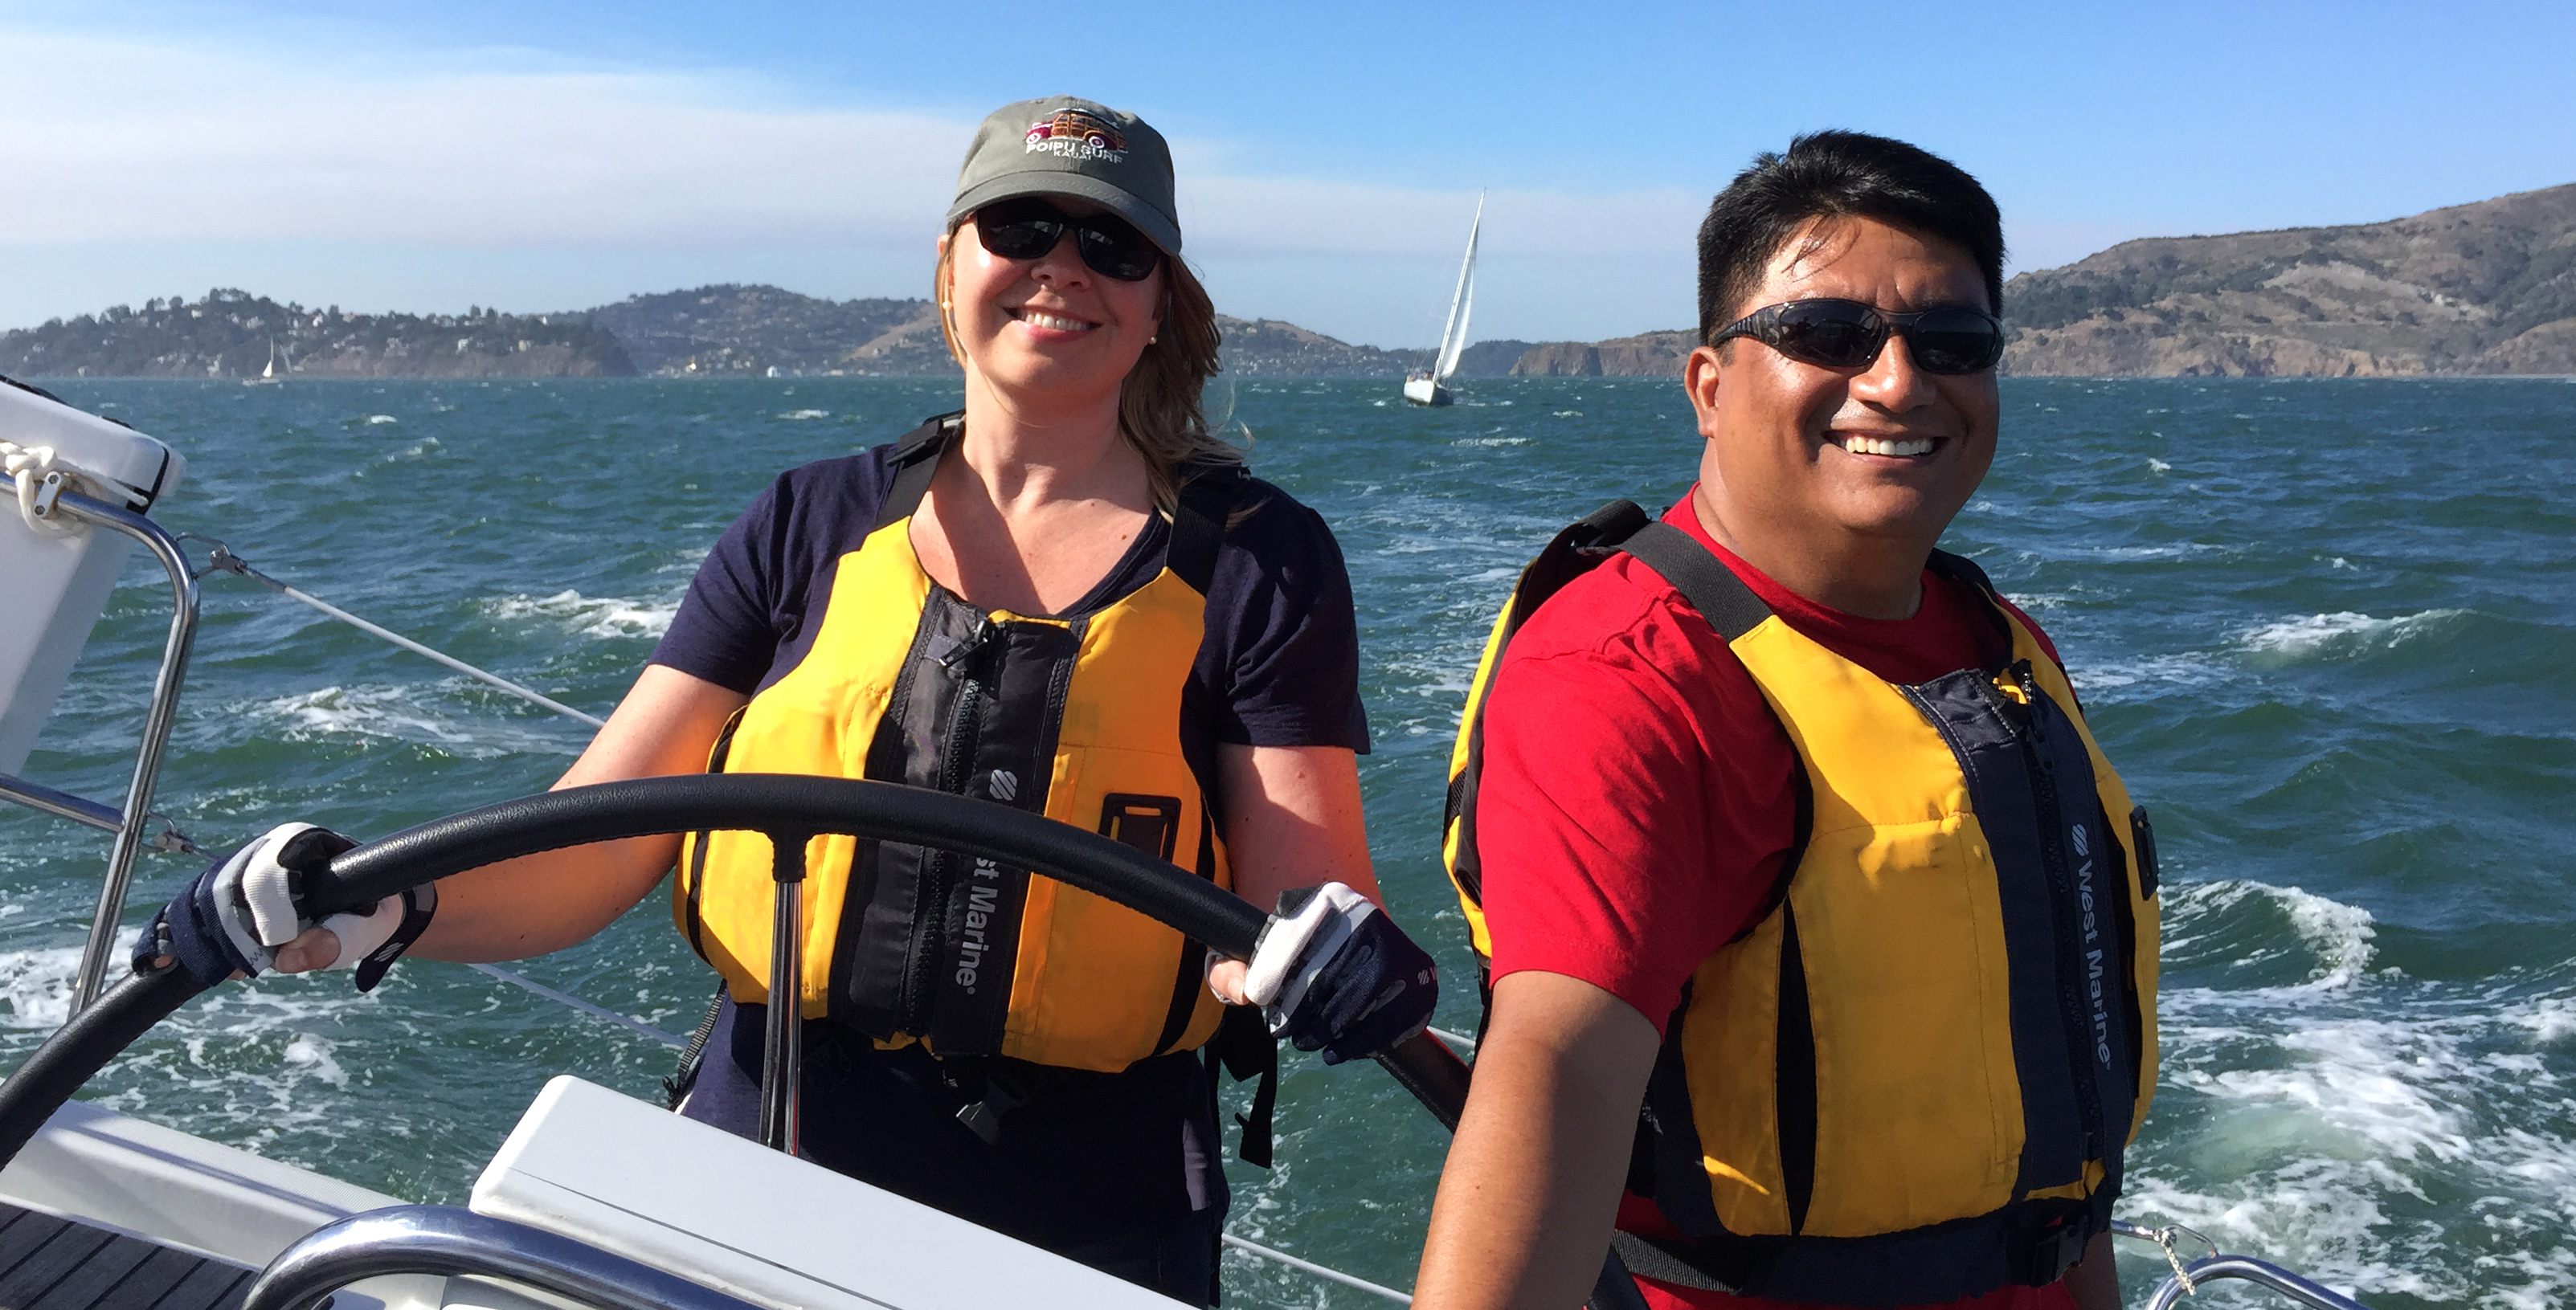 San Francisco Bay in a private sailing lesson with Modern Sailing School and Club